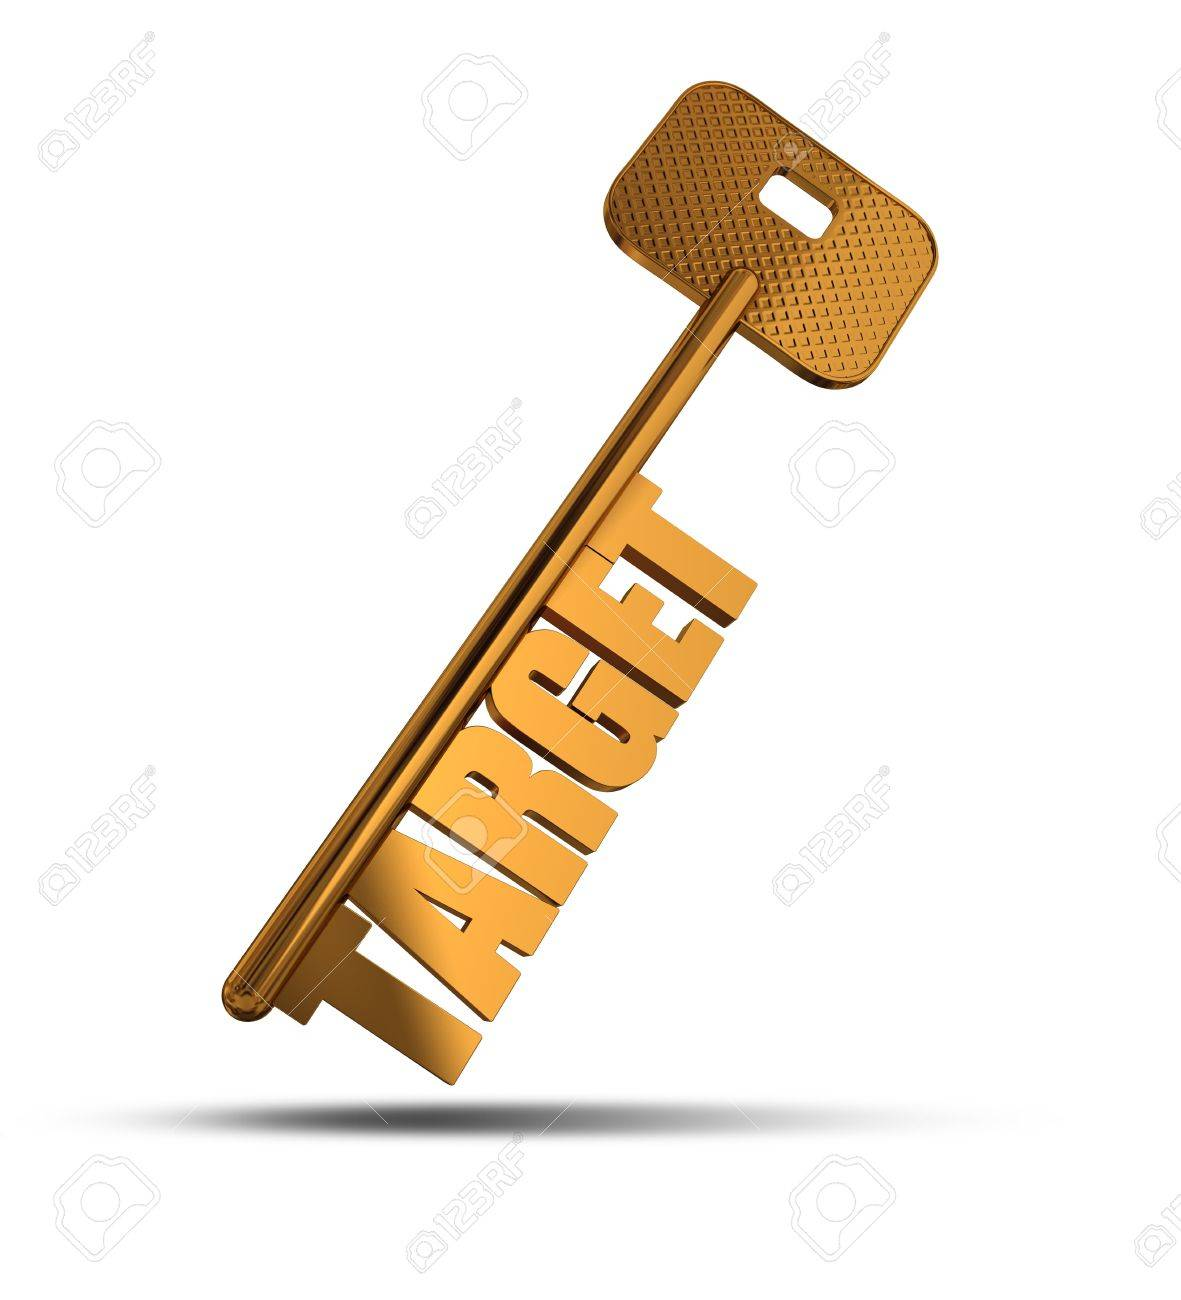 Target gold key isolated on white  background - Gold key with Target text as symbol for success in marketing - Conceptual image Stock Photo - 12606427